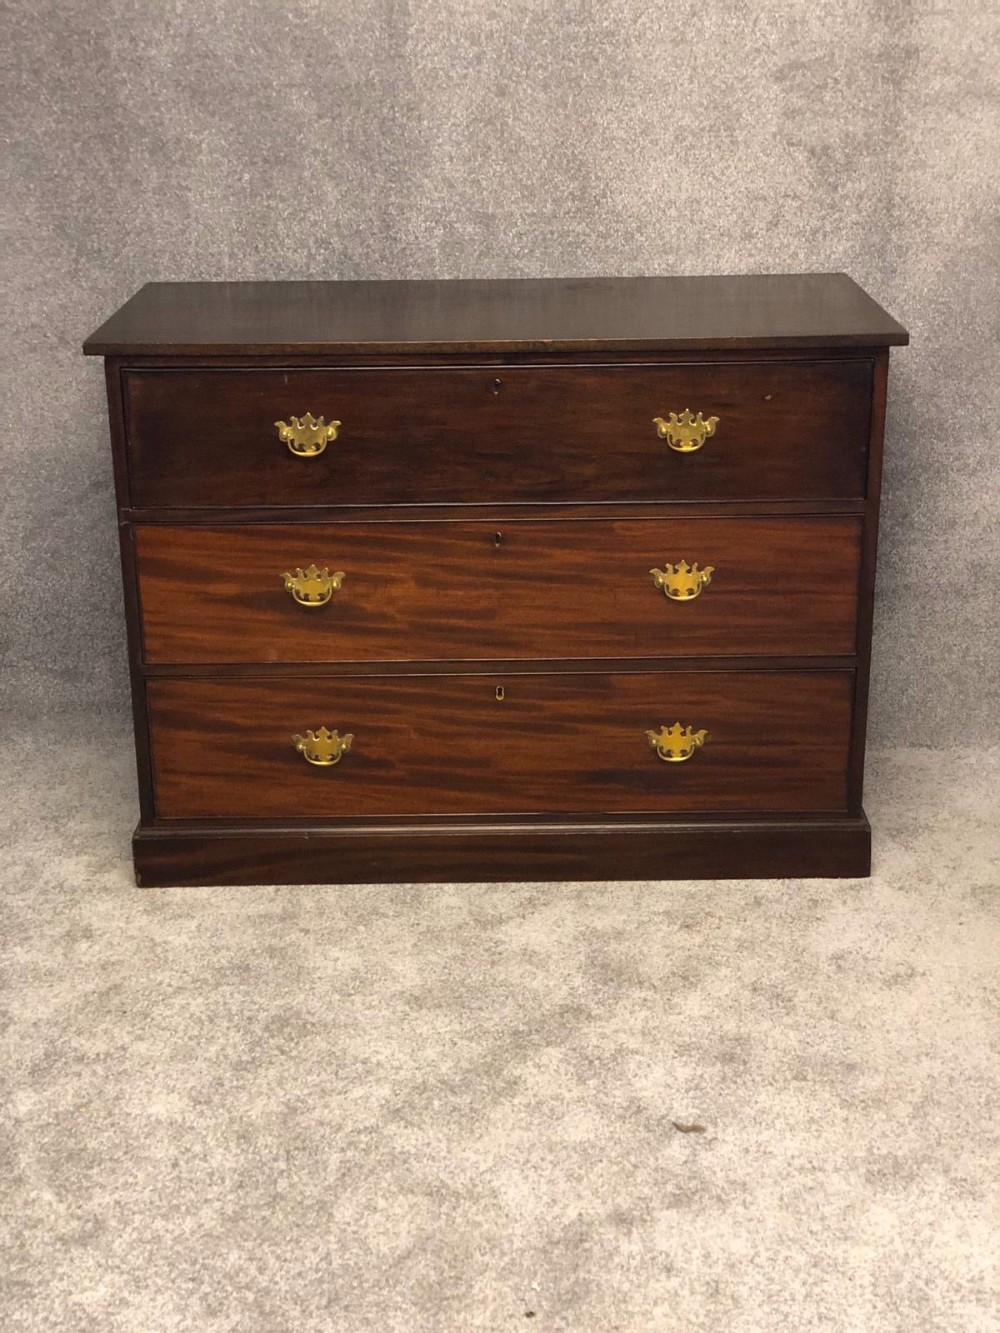 super original georgian 3 drawer chest of drawers all original and in good condition